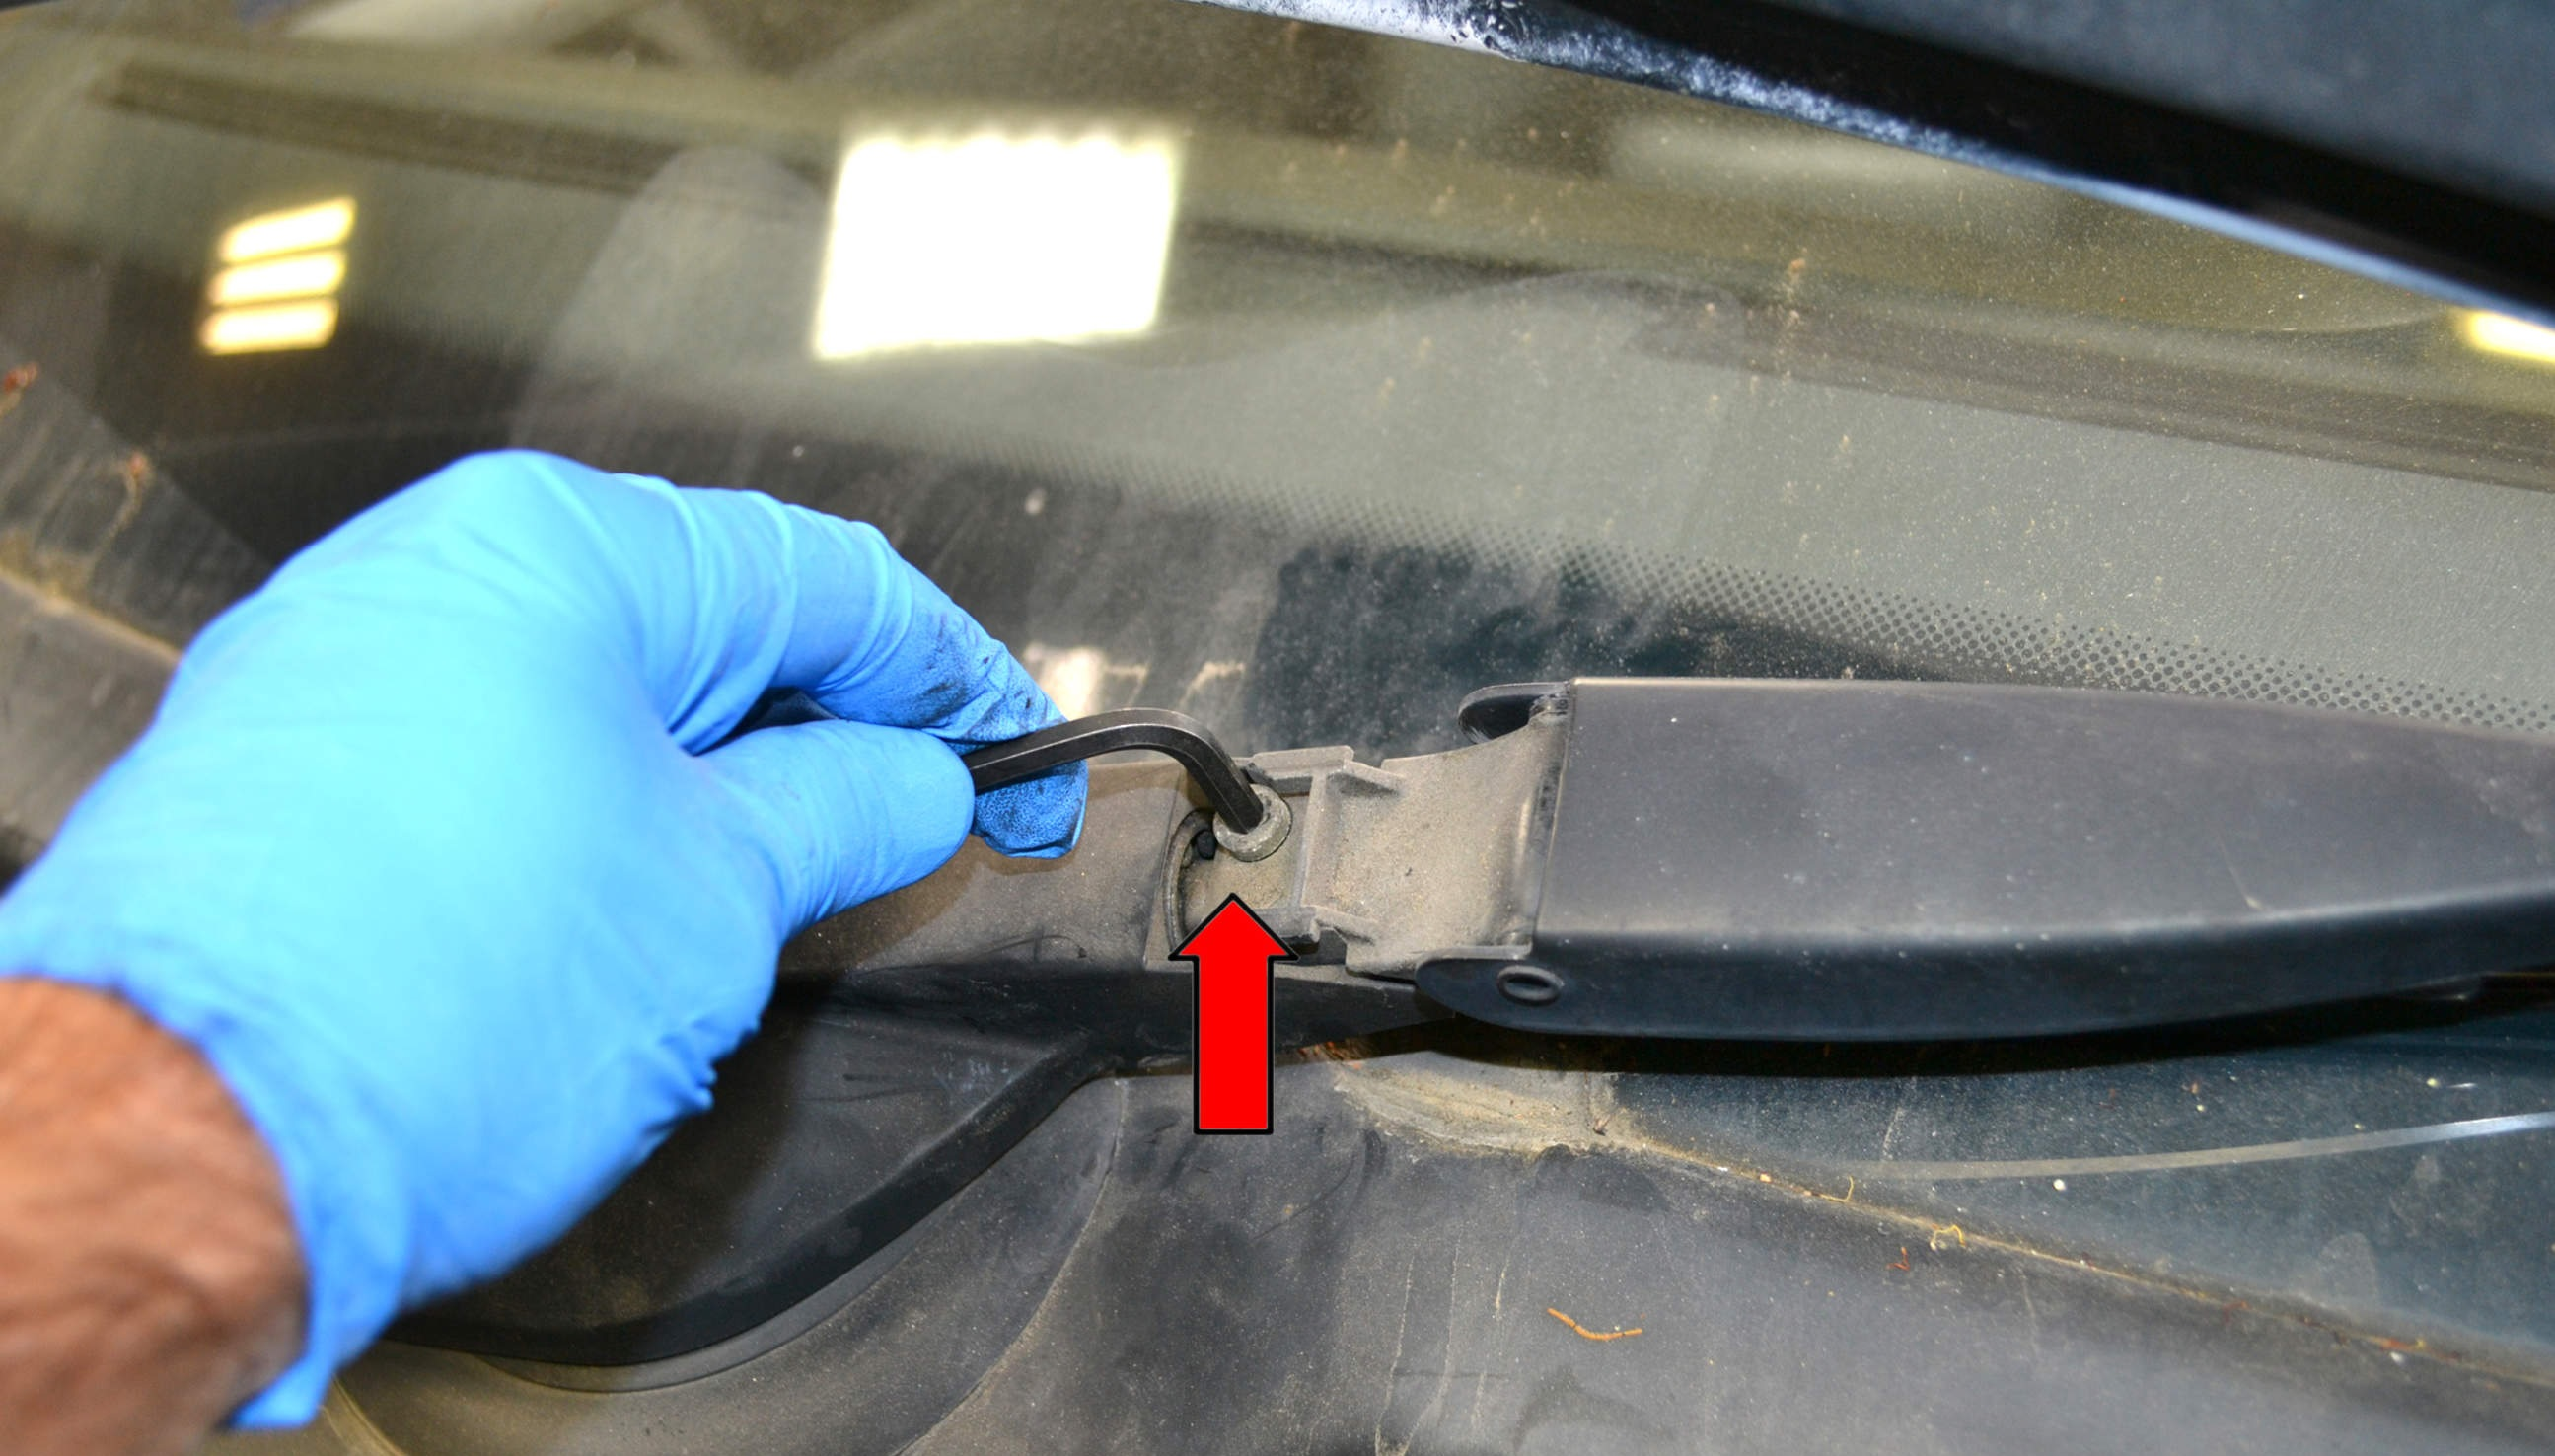 wiper arm adjustment